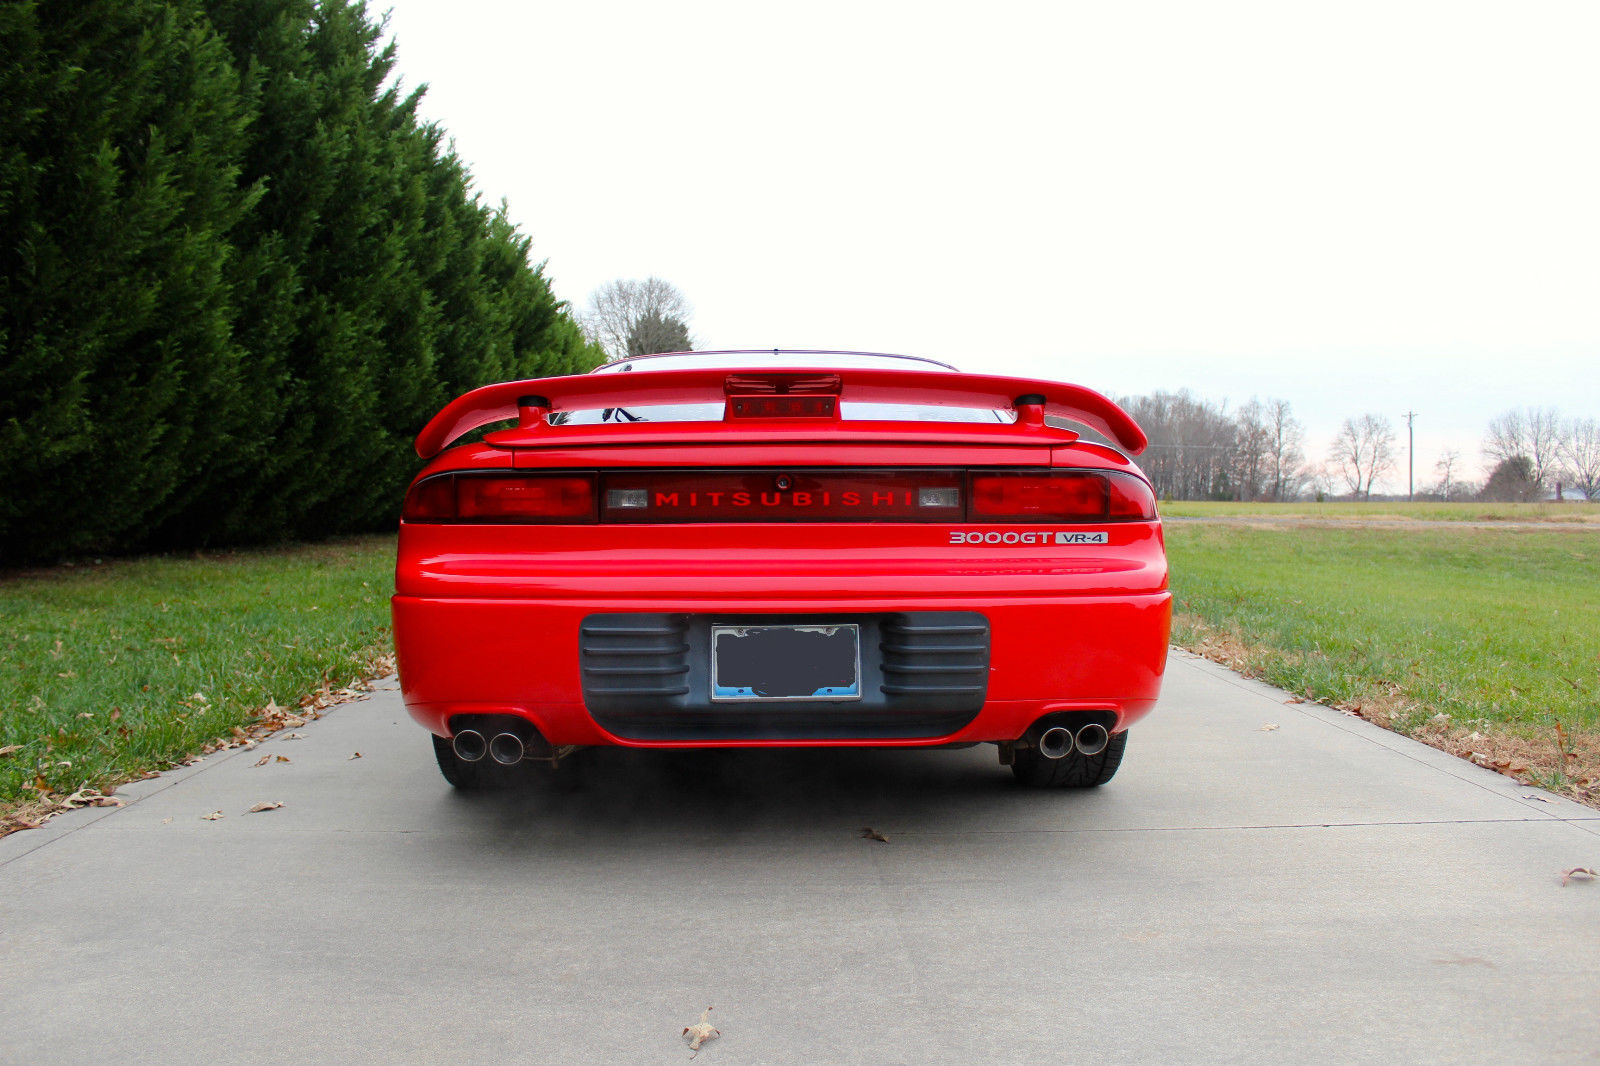 1993 Red Mitsubishi 3000gt Vr4 In Very Good Condition